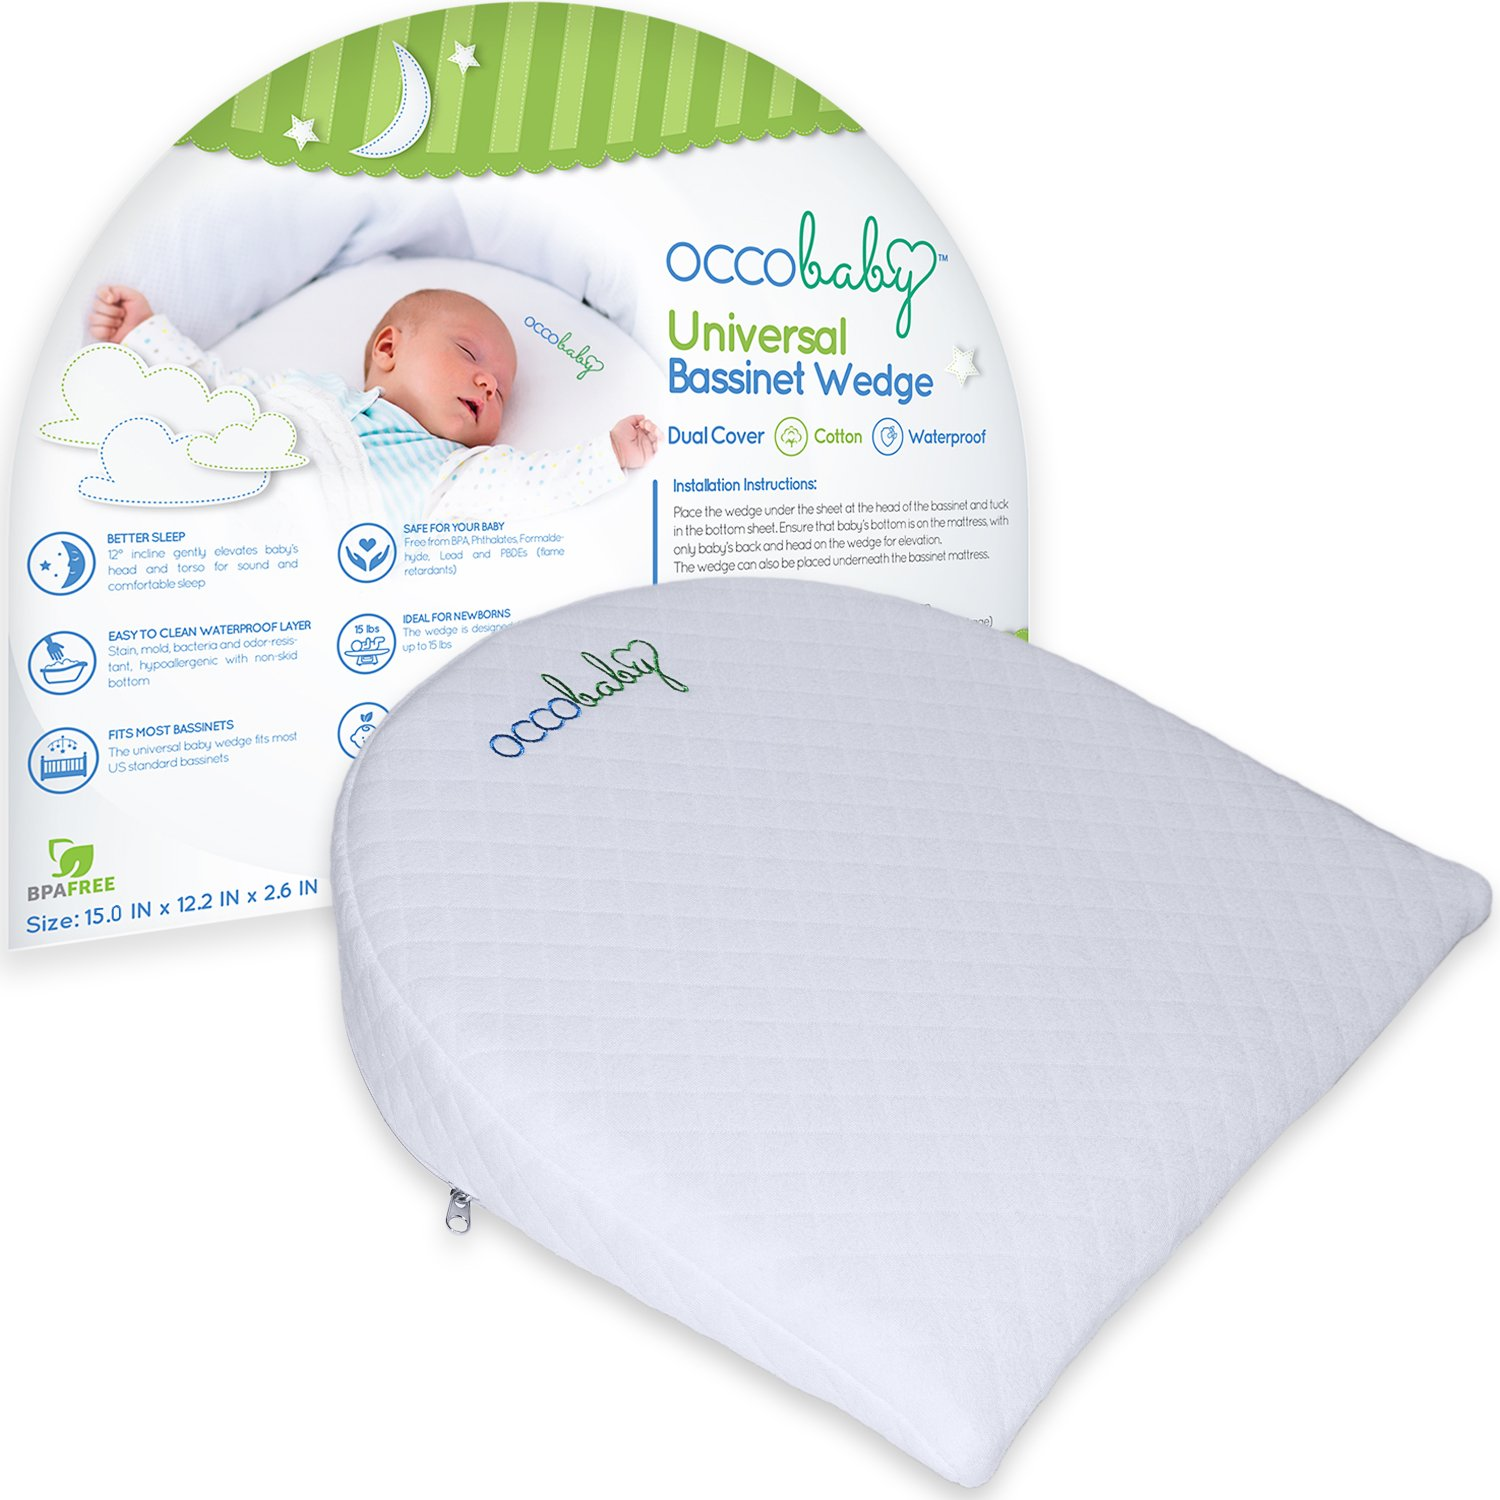 OCCObaby Universal Bassinet Wedge | Waterproof Layer & Handcrafted Cotton Removable Cover | 12-degree Incline for Better Night's Sleep universal???? OCCOwedgeSM